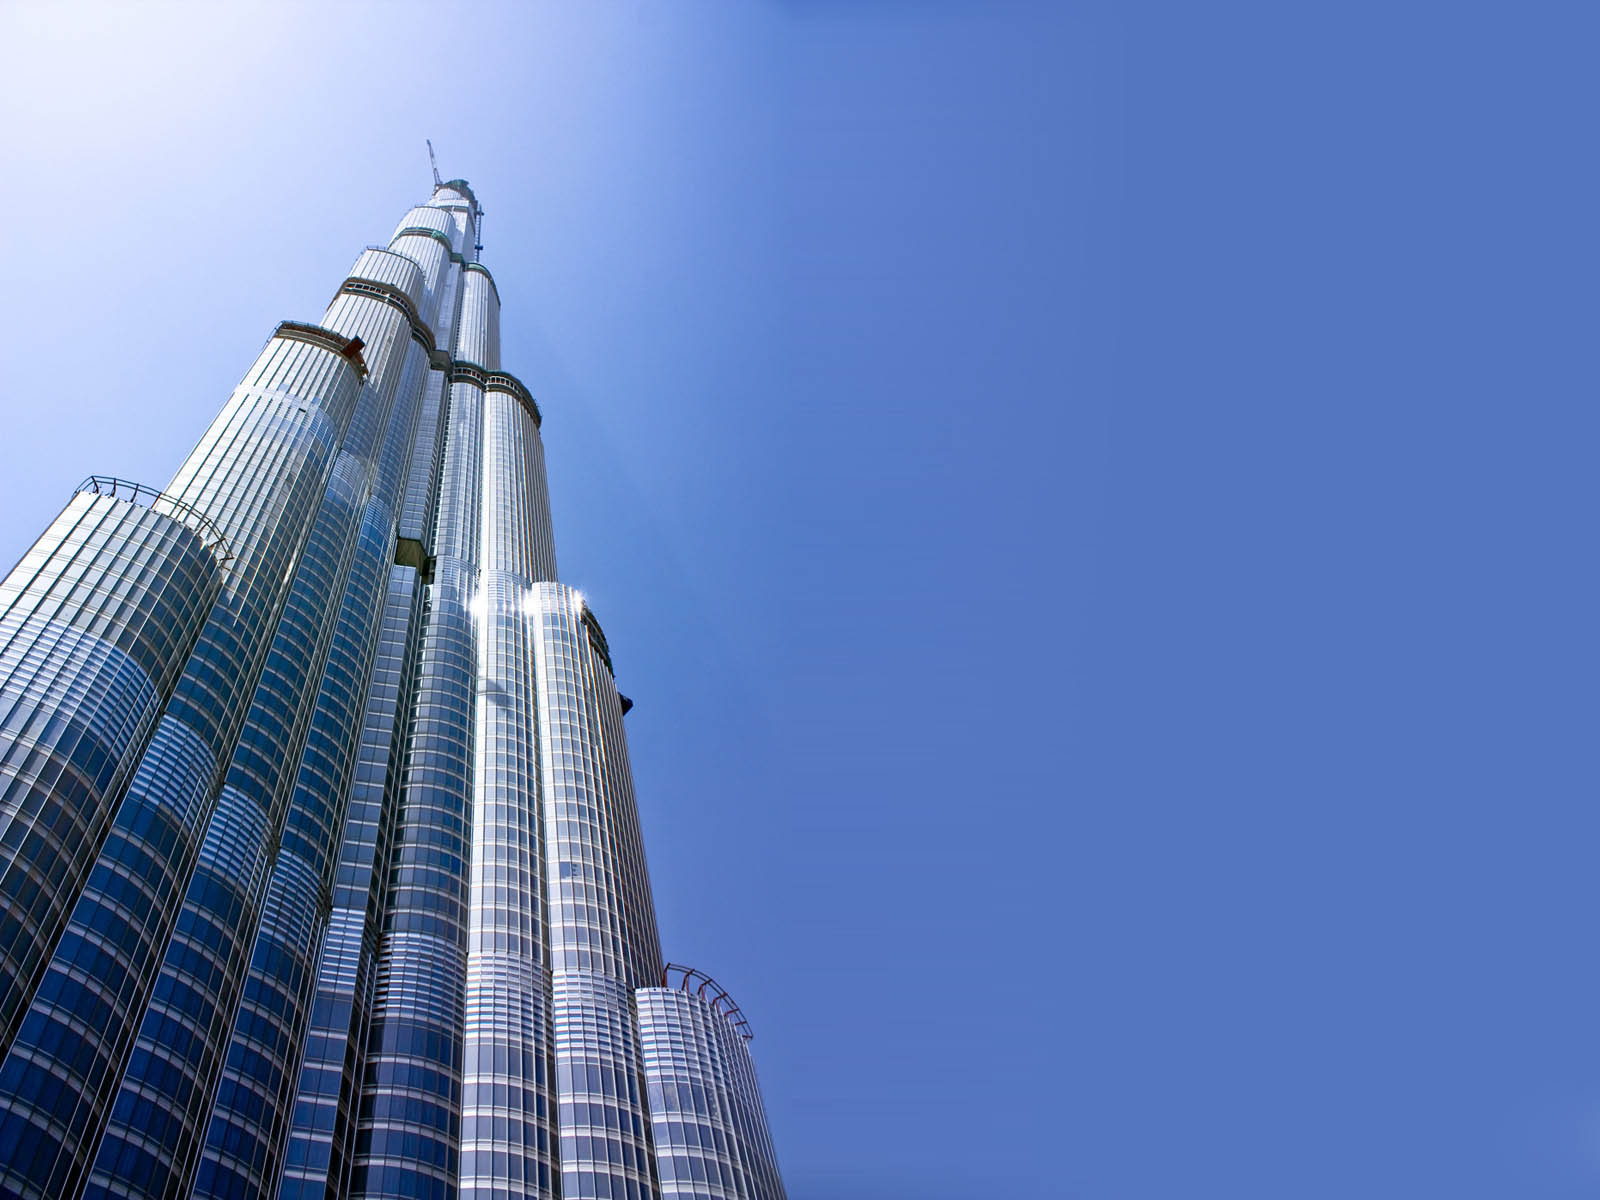 burj khalifa aka burj dubai wallpapers (15 wallpapers) – hd wallpapers